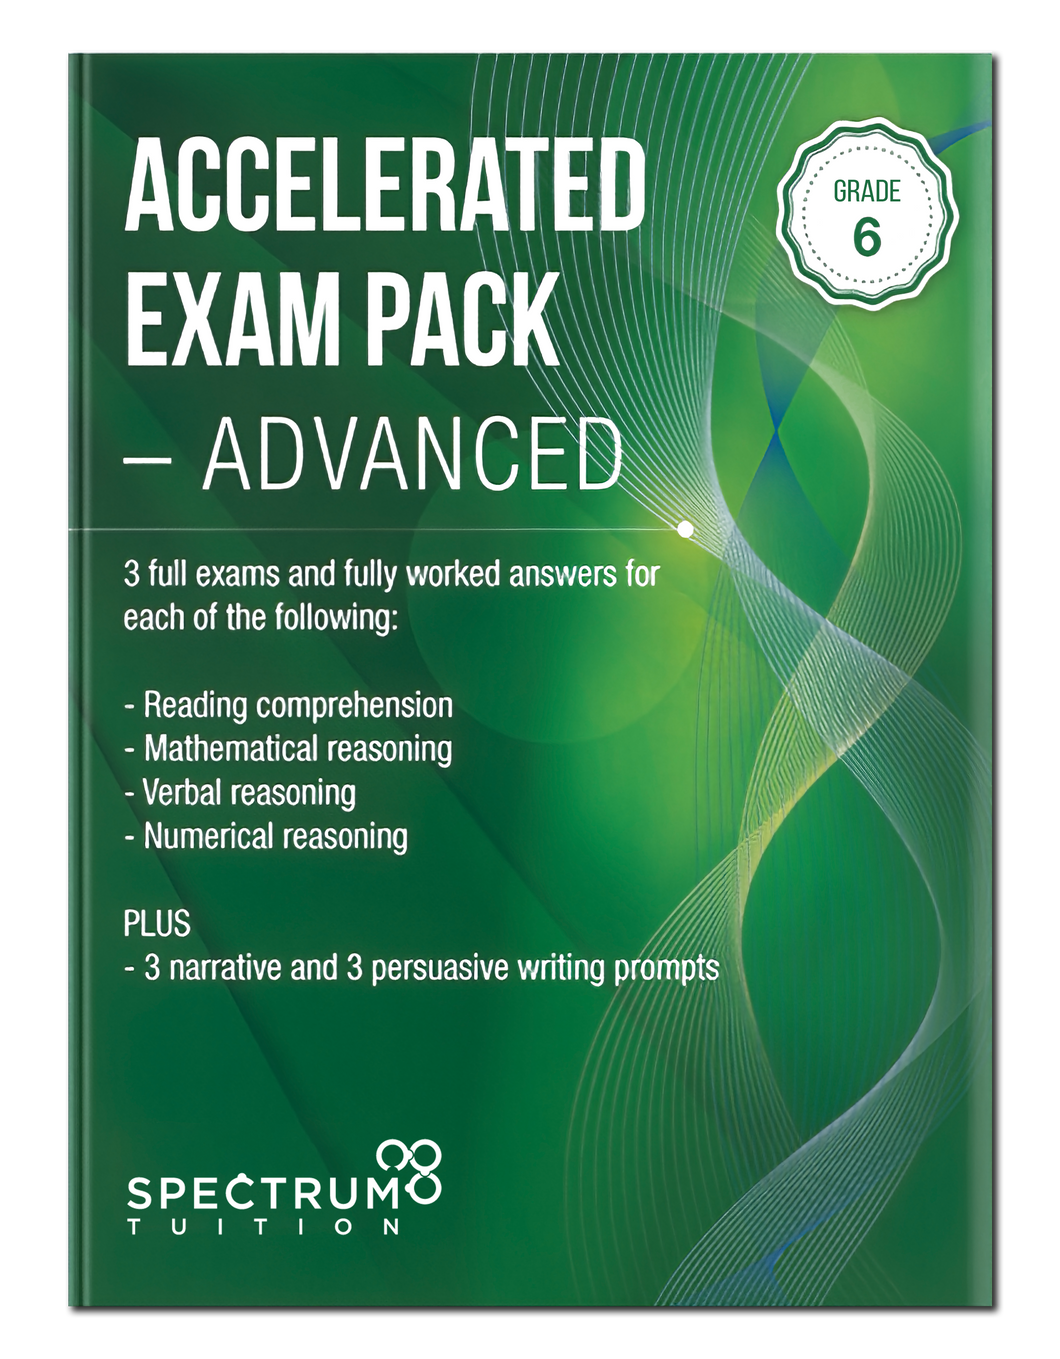 Accelerated Exam Pack - Advanced